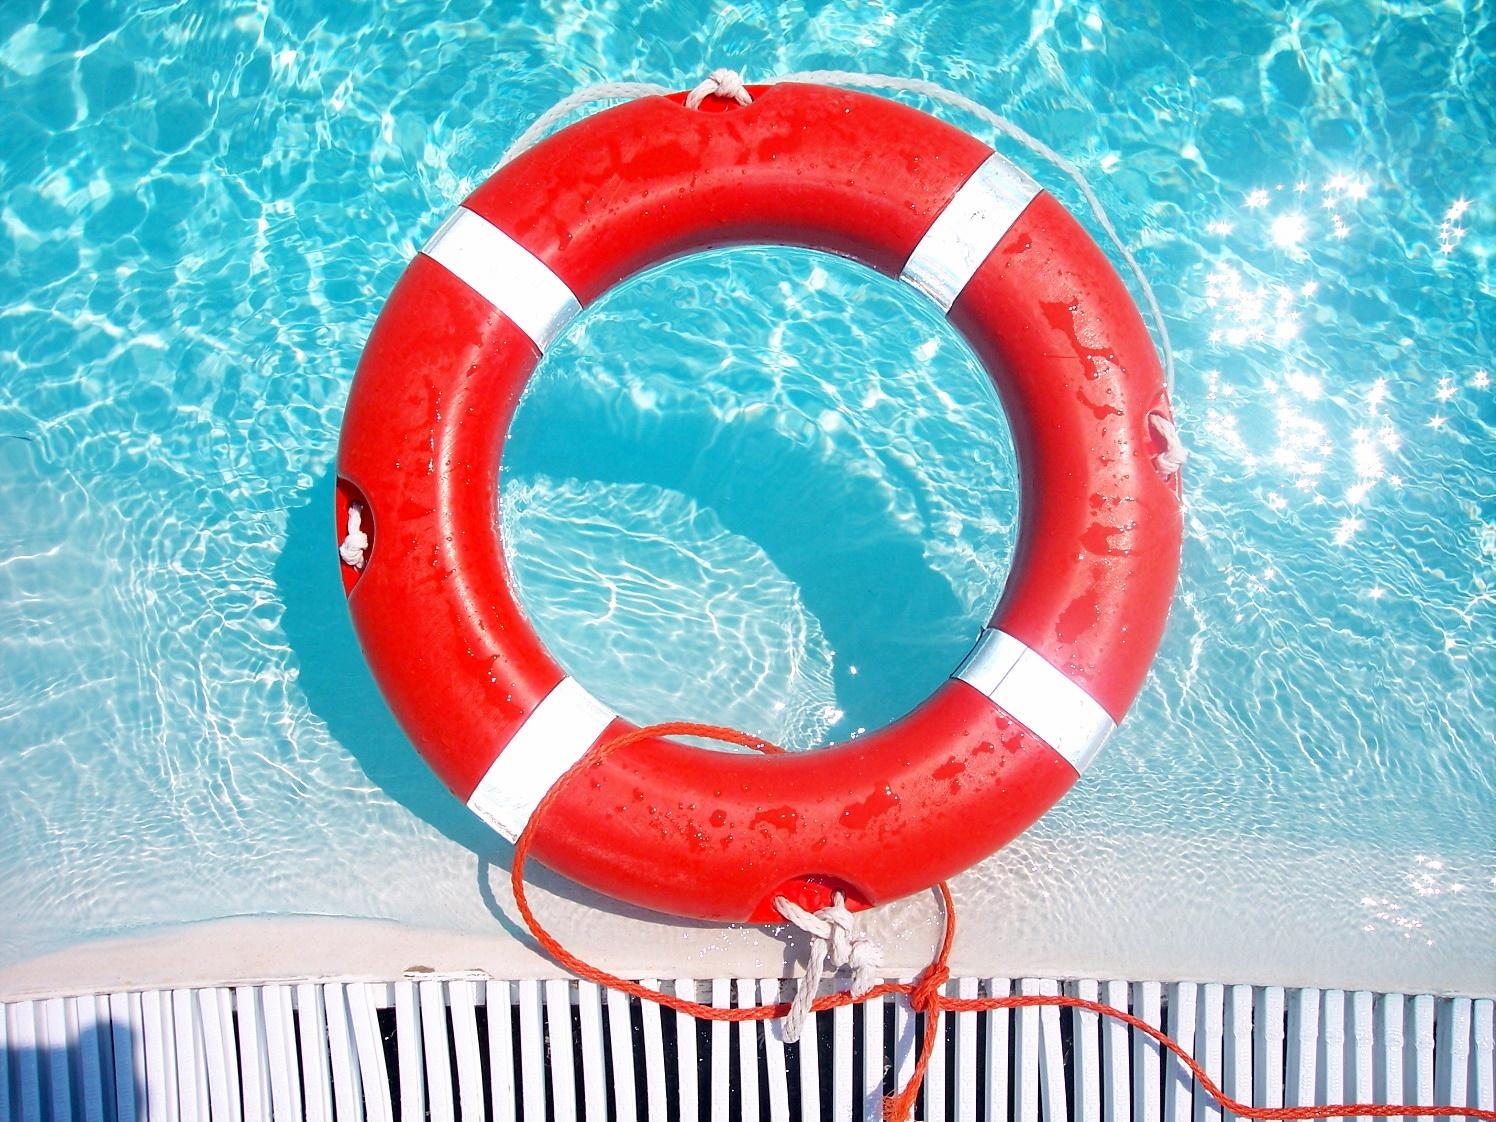 For safe and healthy swimmers, establish swimming rules, keep pools clean and have appropriate safety equipment on hand.